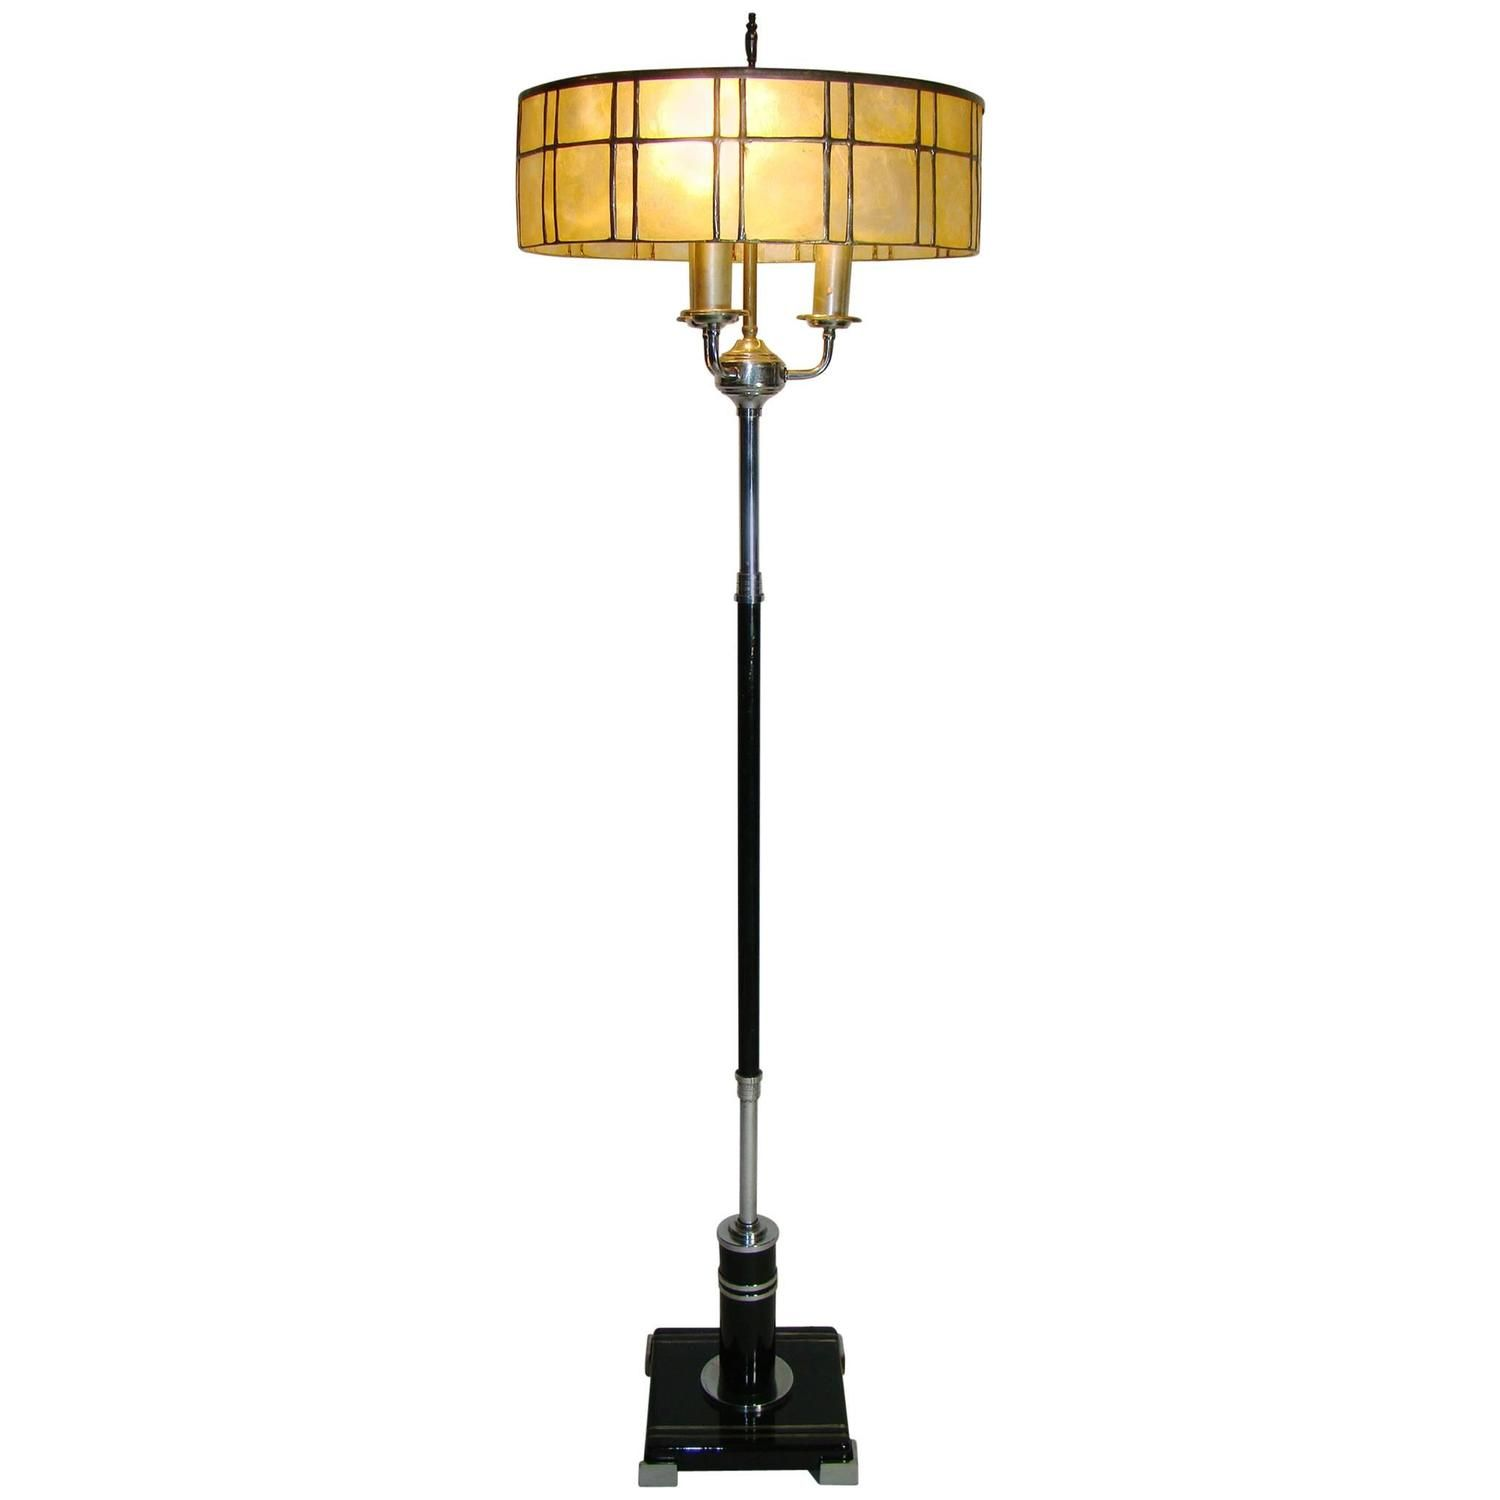 American Art Deco Chrome Black Floor Lamp circa 1920s